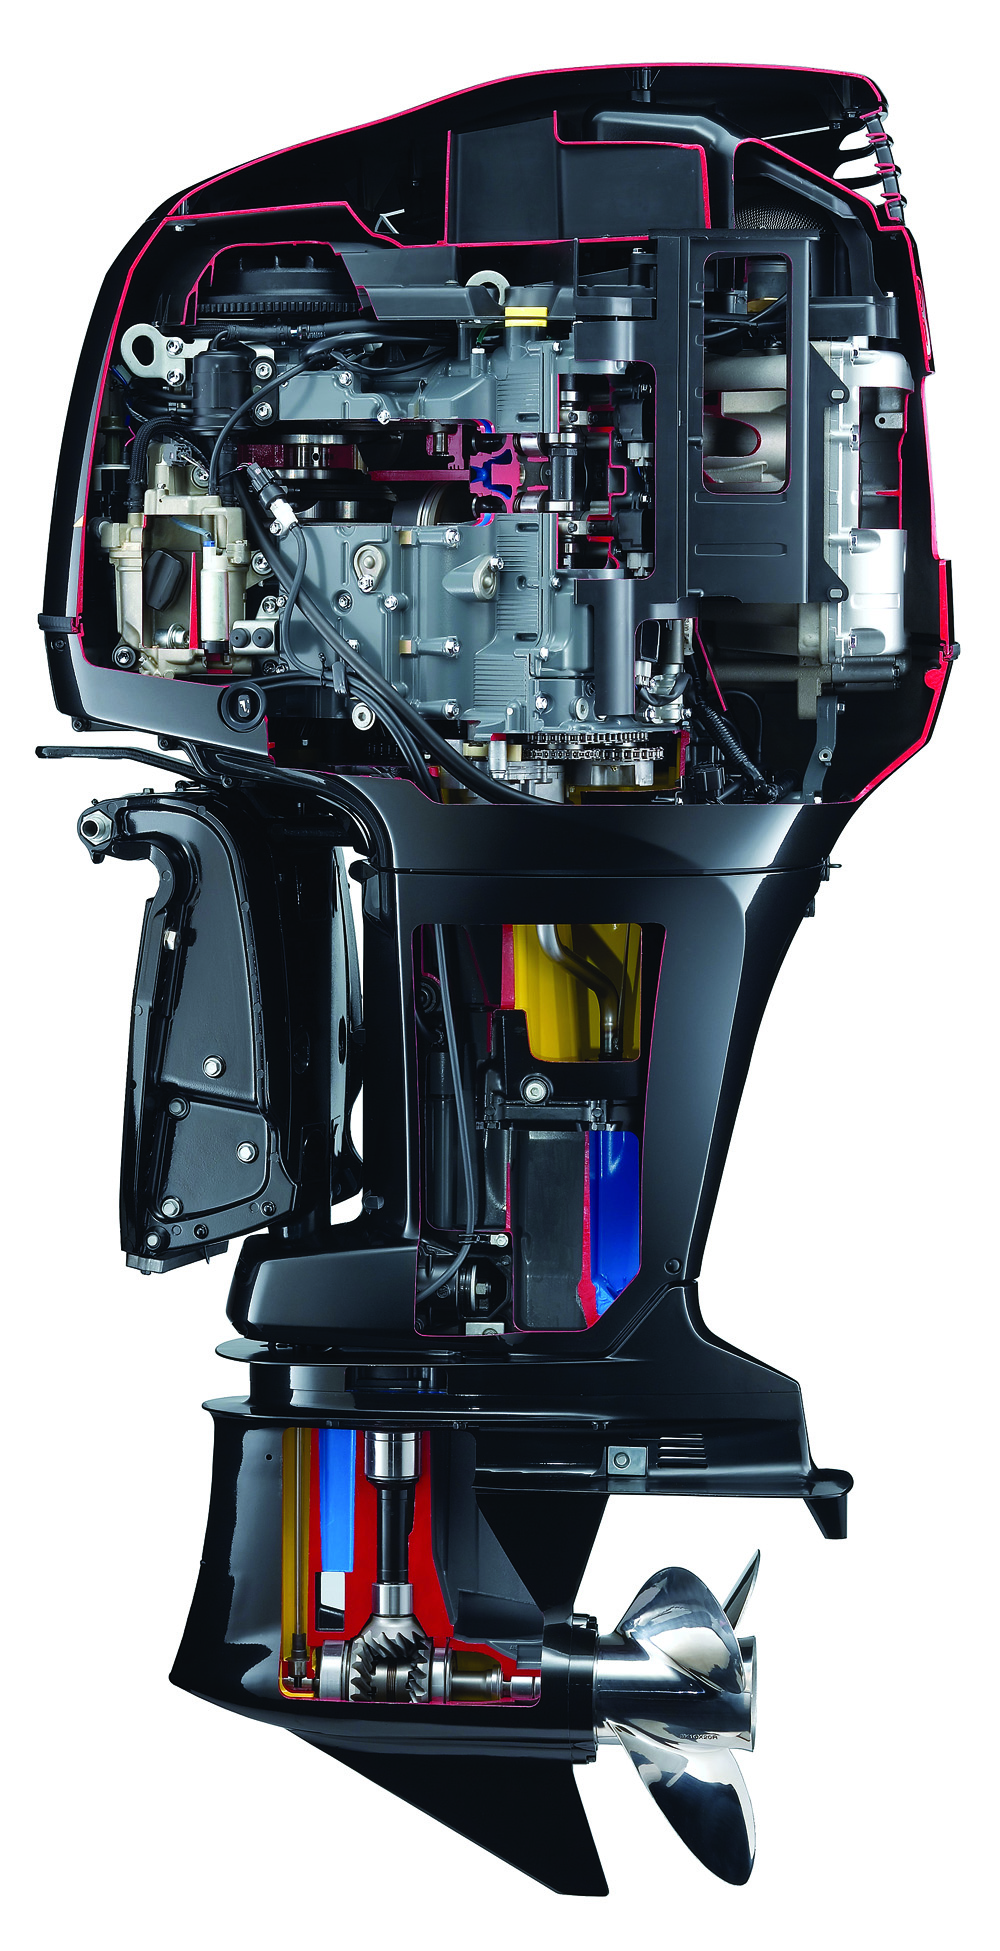 Outboard Basics: How to Maintain Your Boat's Outboard Engine | Sport